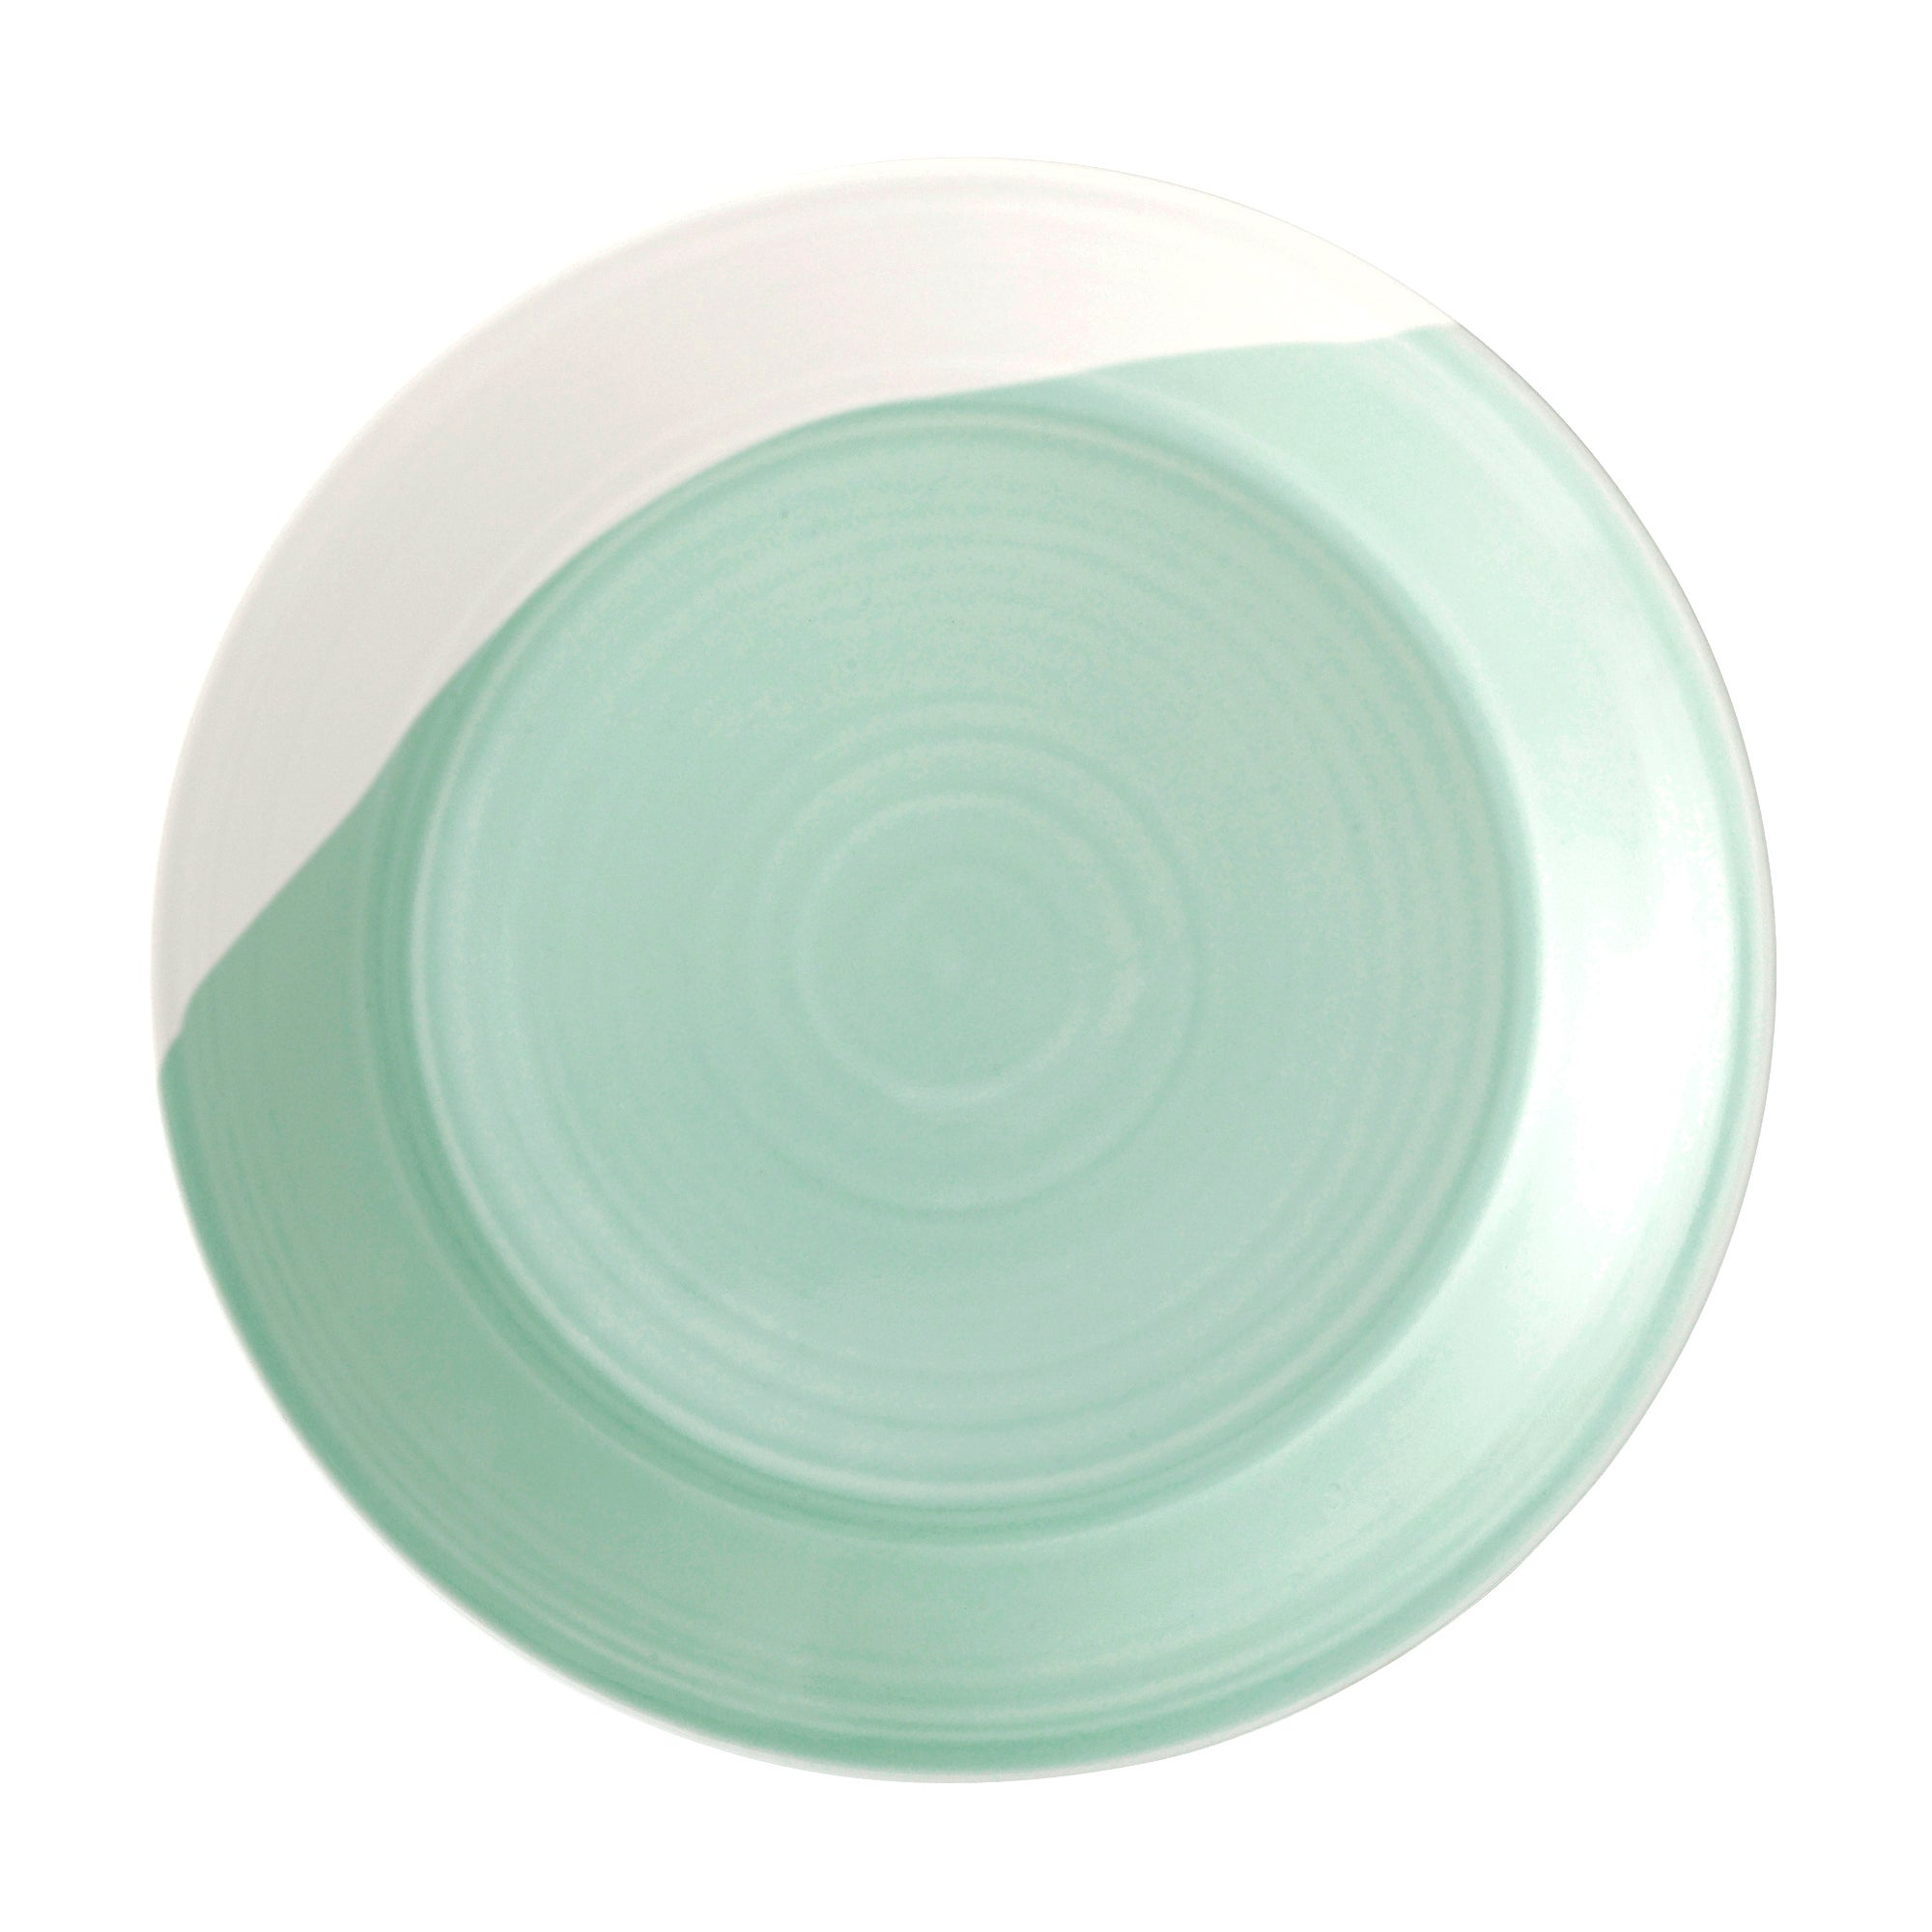 Royal Doulton Green 1815 Collection Dinner Plate